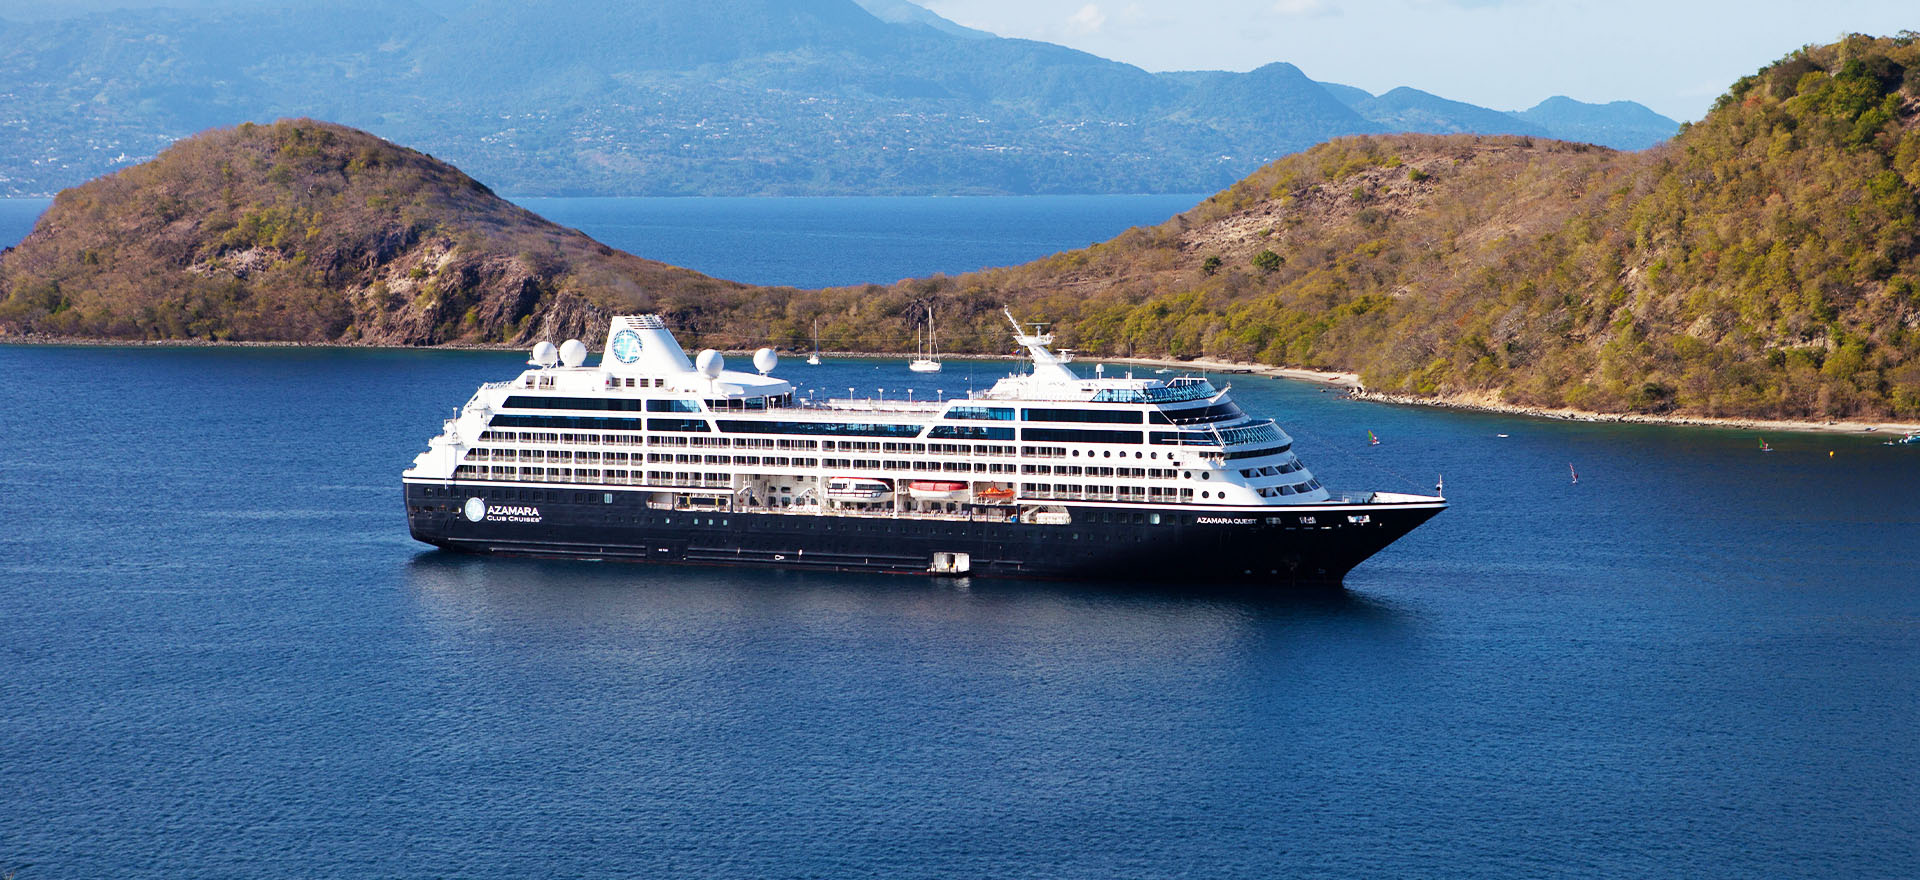 Azamara Quest ship, sailing on open waters